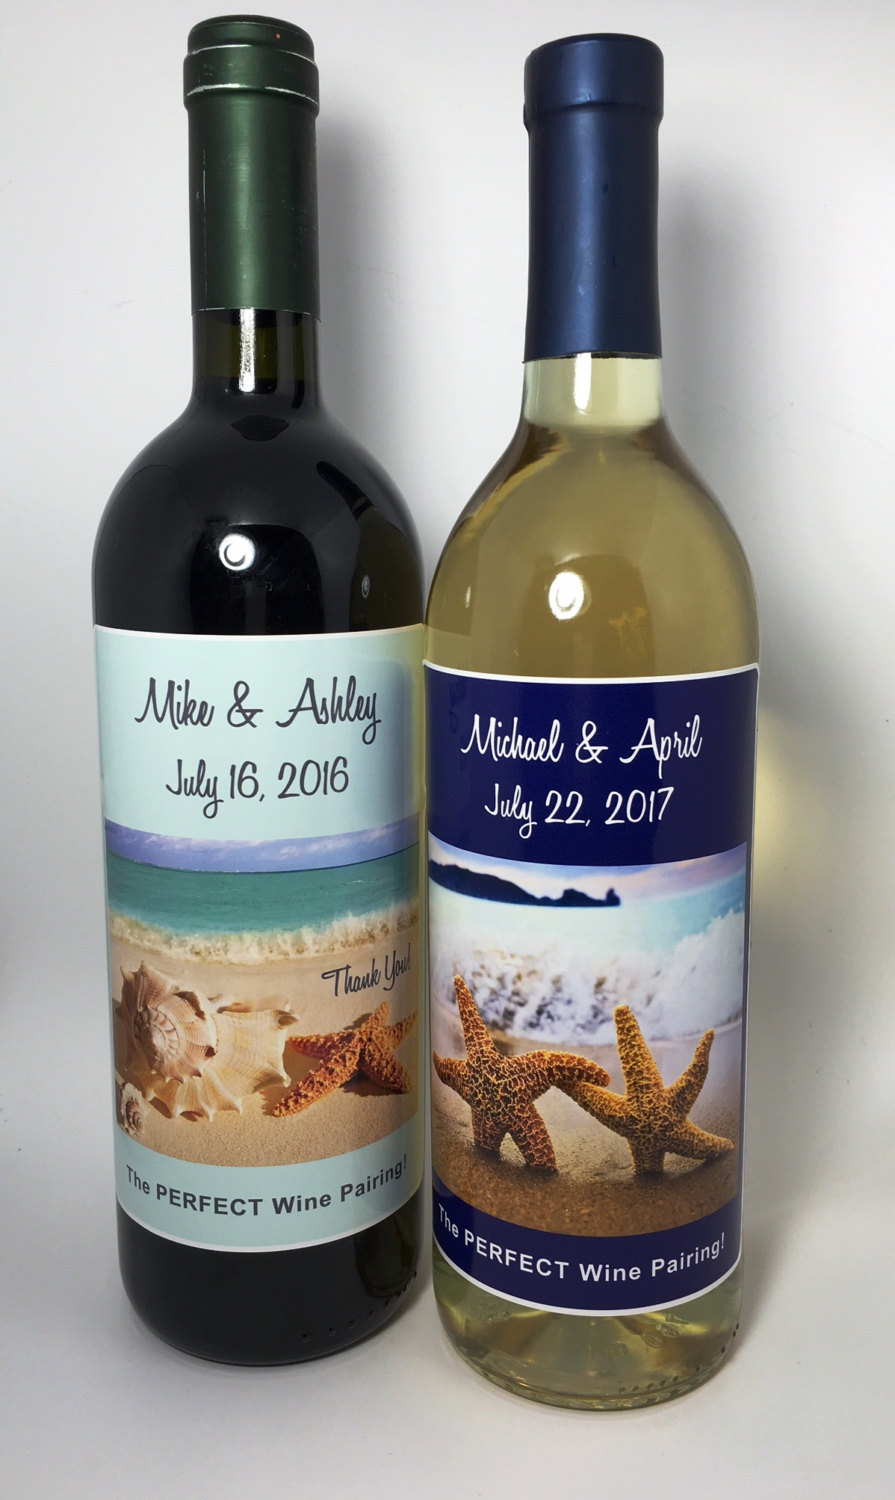 Personalized Wedding Wine Bottle Labels Party Favor Beach Theme Starfish Seashell Waterproof Label Customize Colors Text